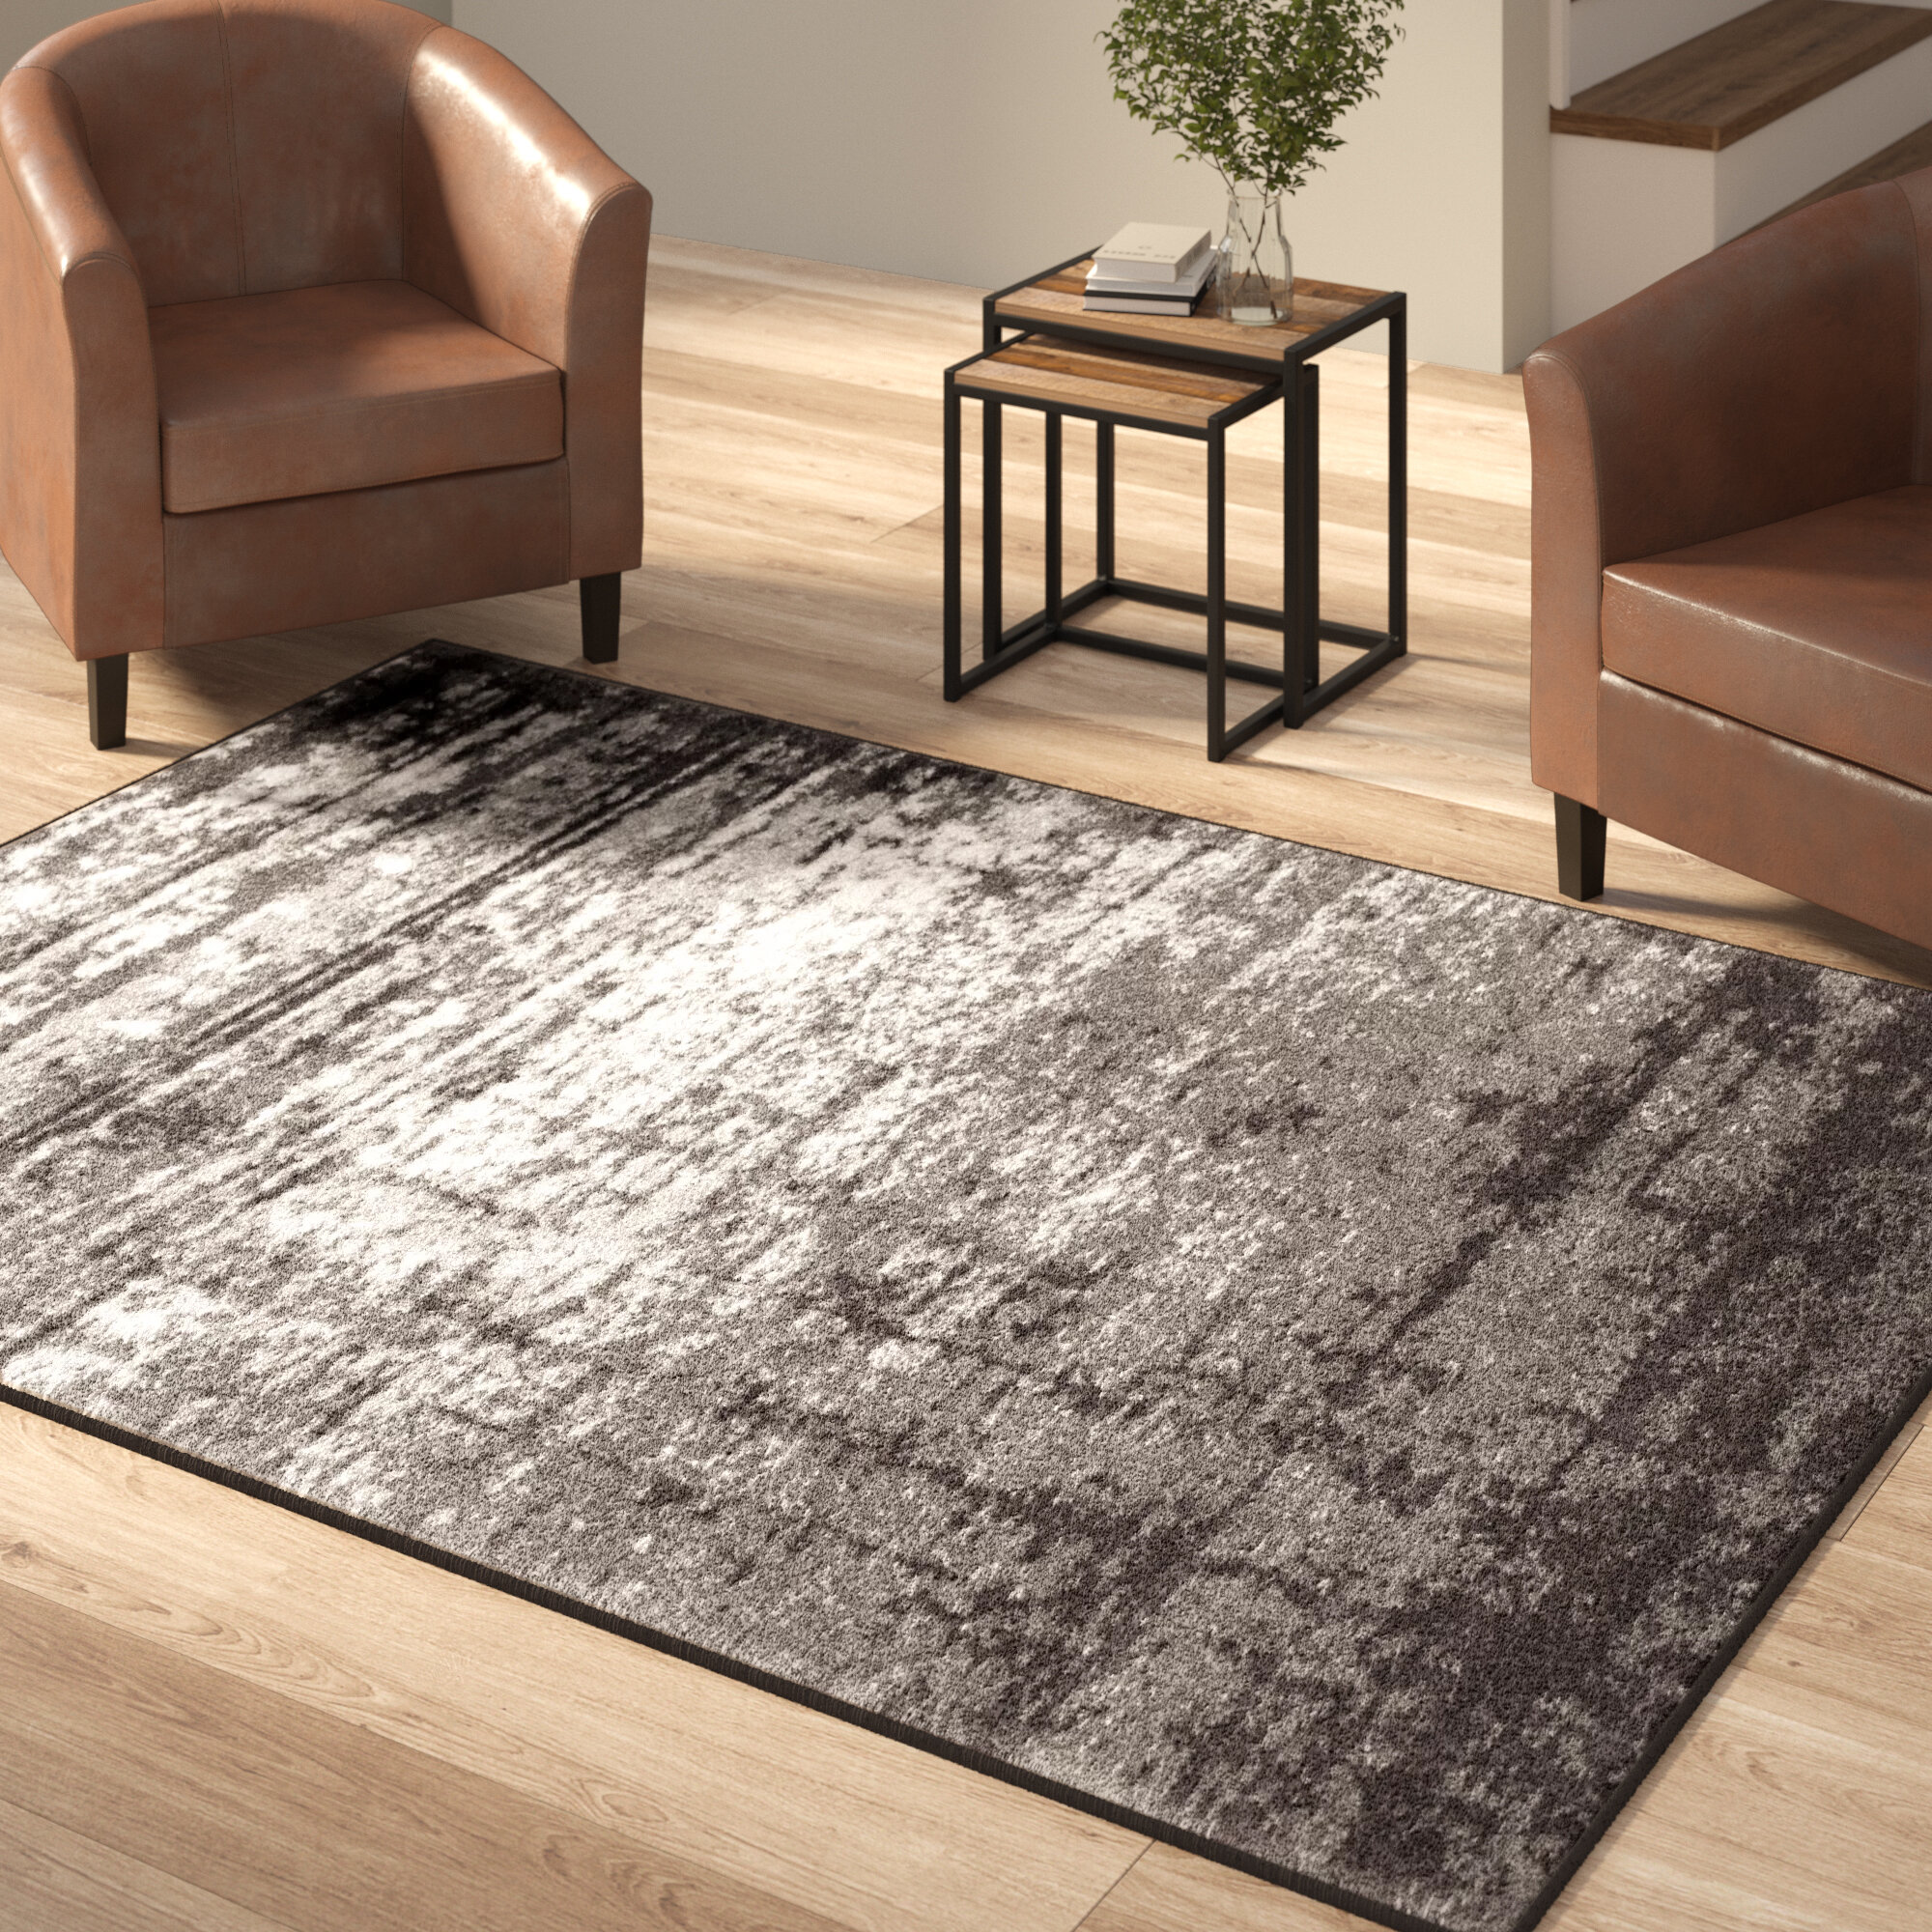 cd2fbdc7a41 Longweave Sneed Grey Rug in 2019 Products t Grey